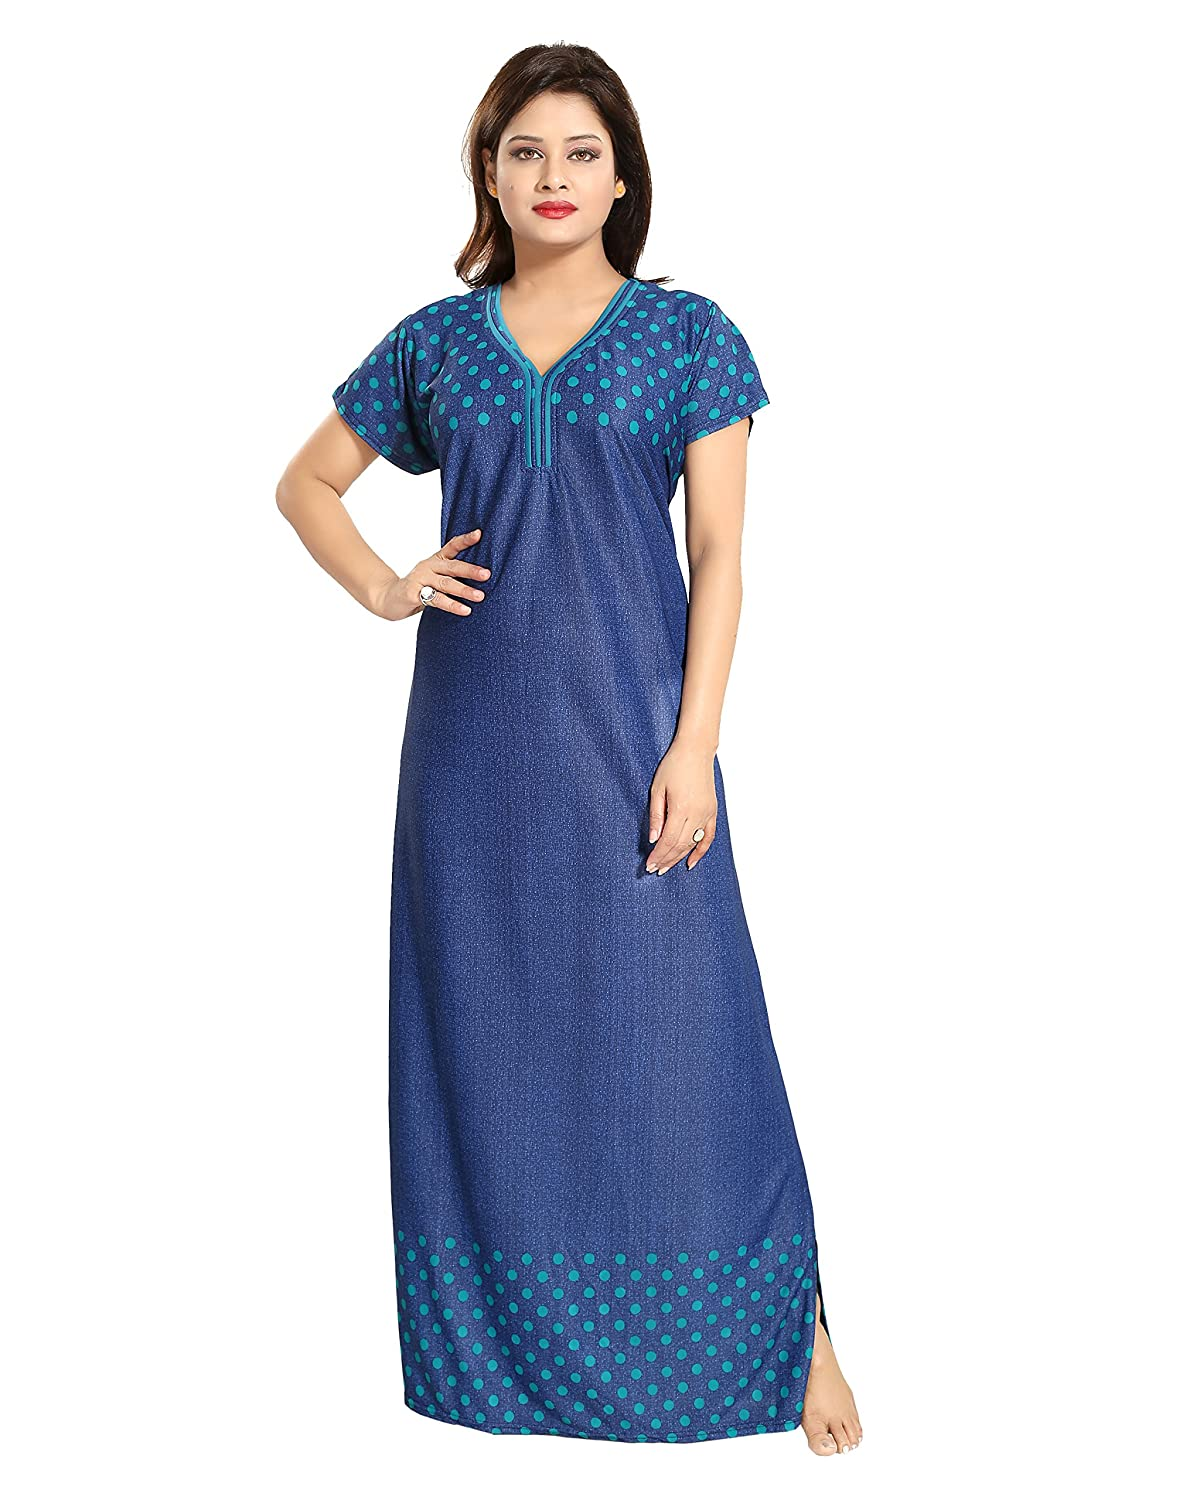 nightdress for women buy night dress and night shirts online for